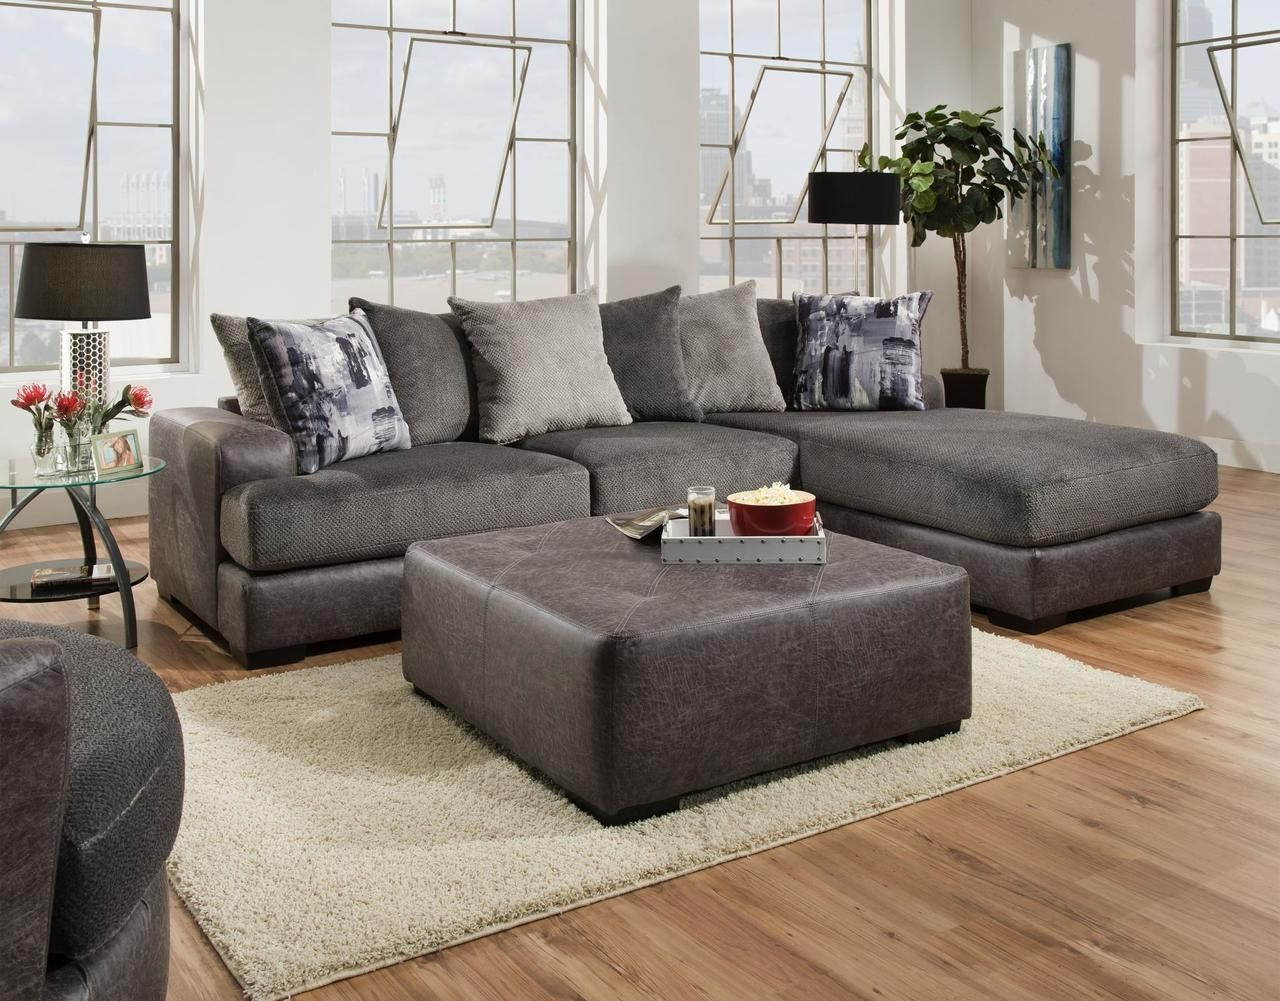 Albany Wesley Dove 682 Sectional Sofa Savvy Discount Furniture 2 Piece Sectional Sofa Furniture Cheap Living Room Furniture